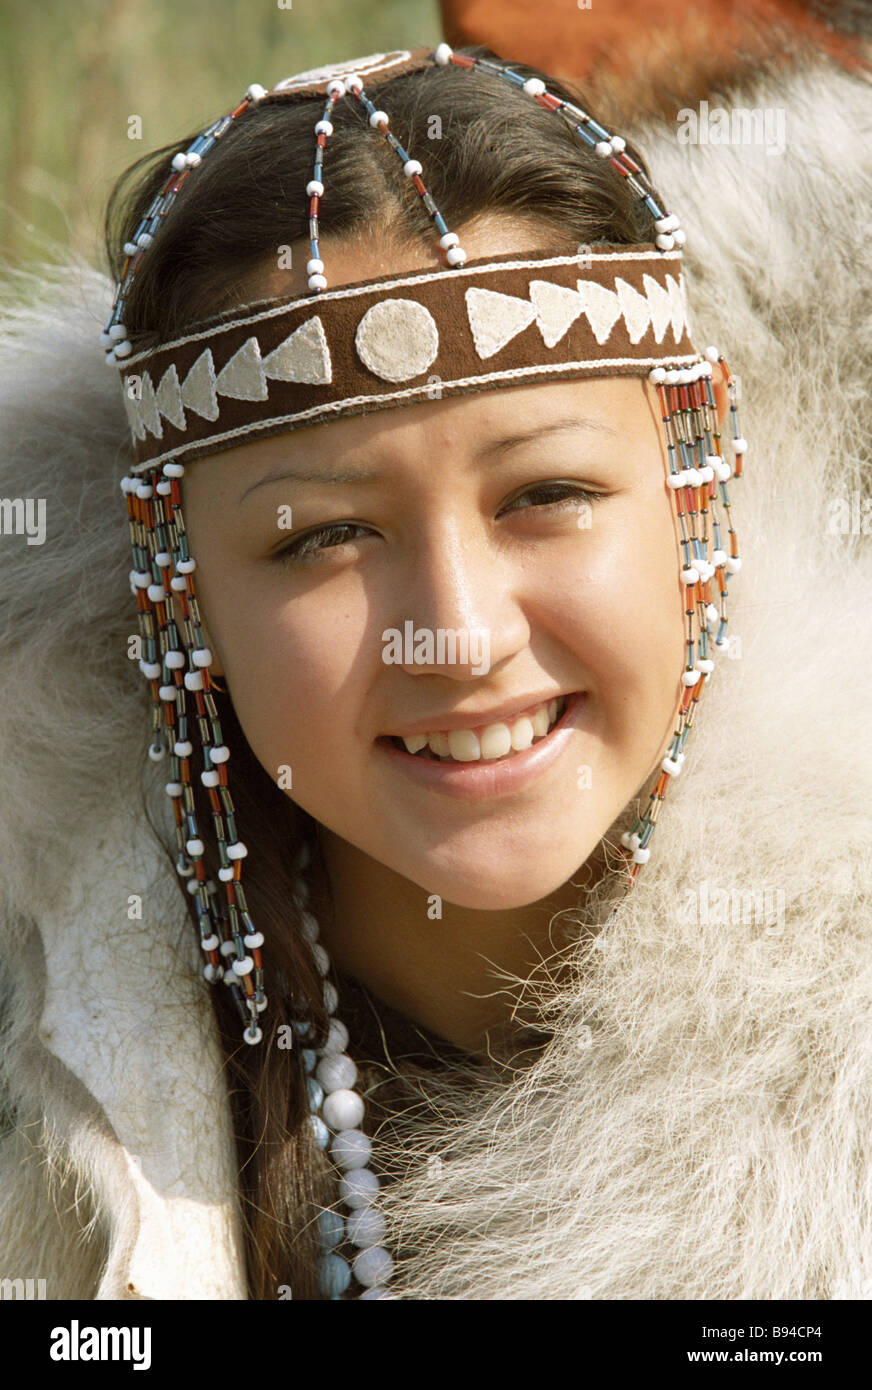 Member of the Chukotka song and dance ensemble wearing a national head dress - Stock Image